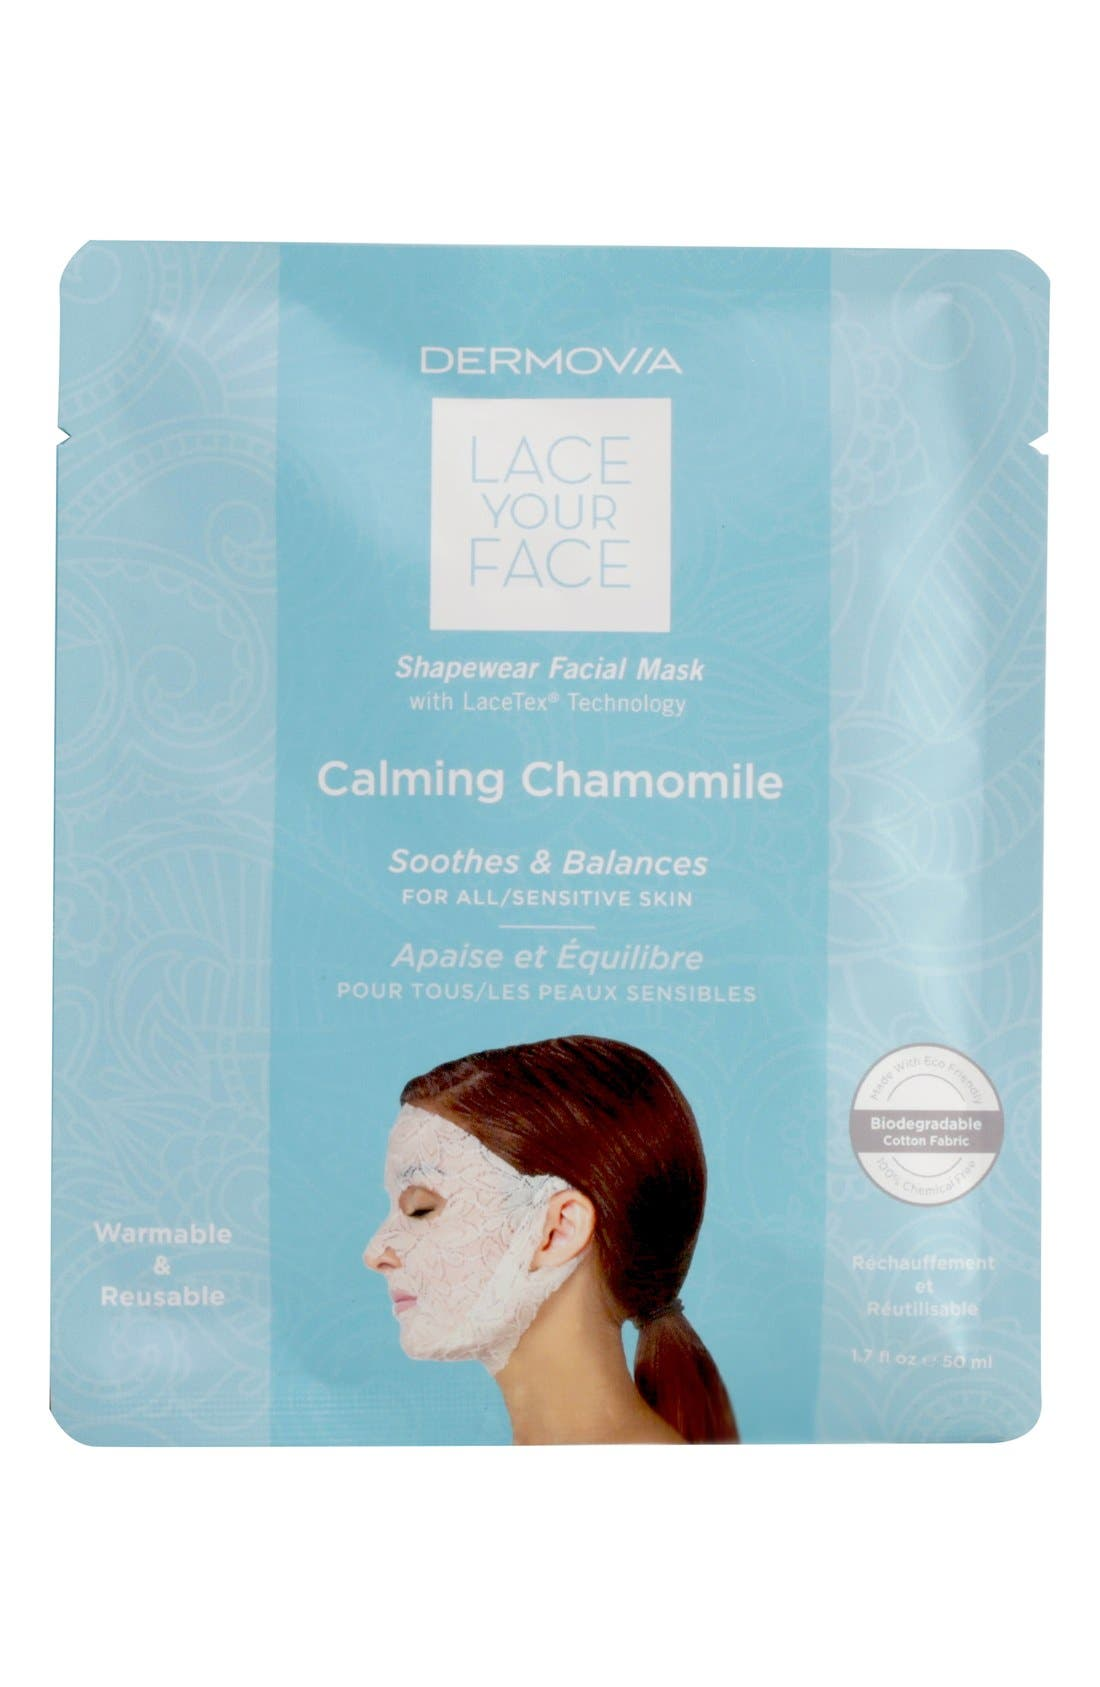 Dermovia Lace Your Face Chamomile Calming Compression Facial Mask